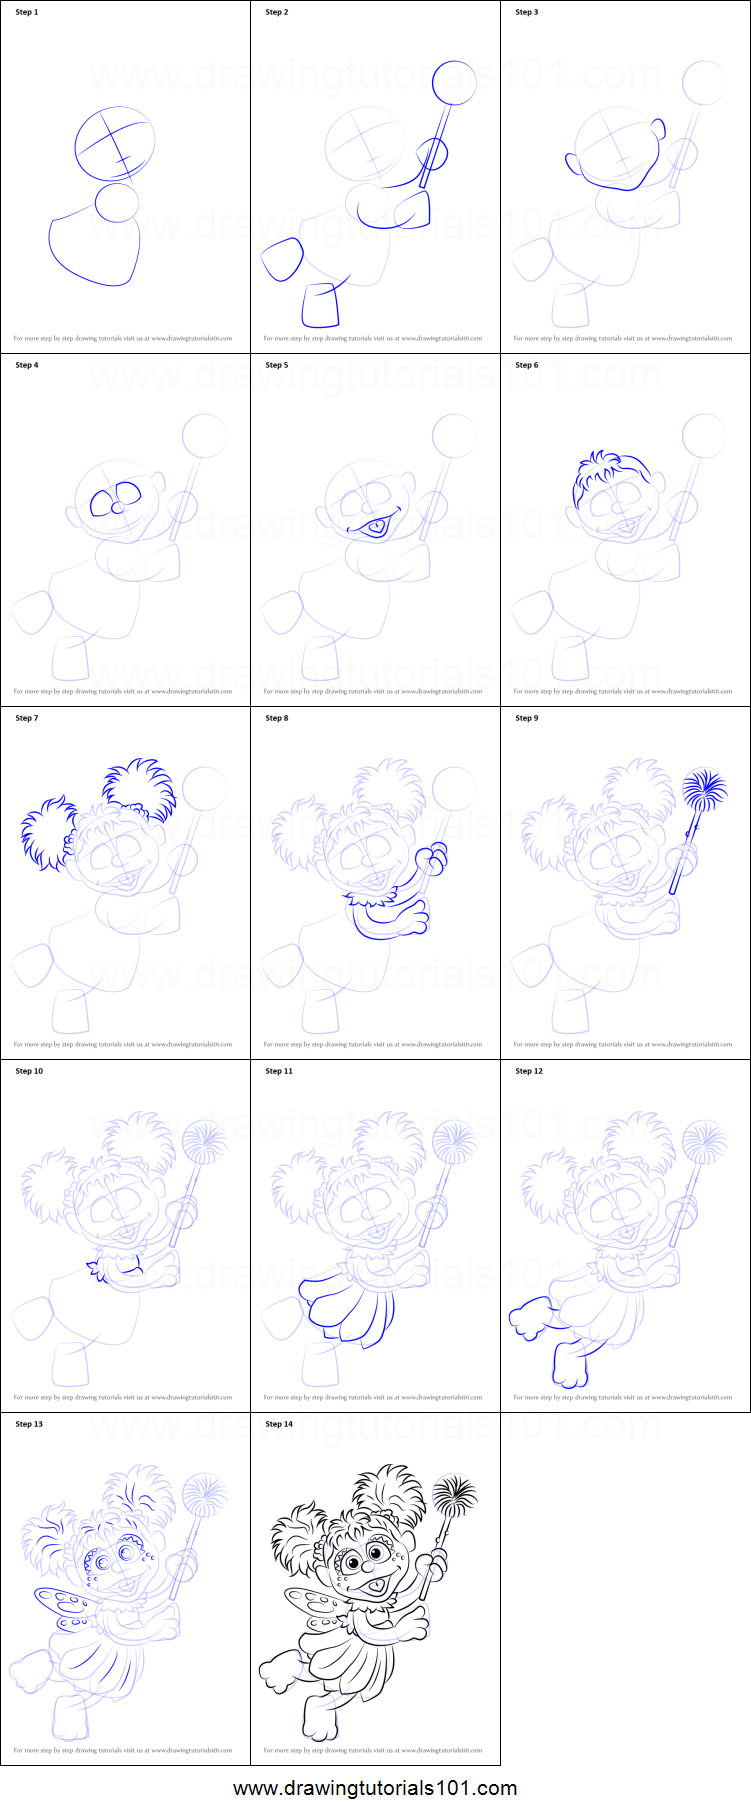 How to Draw Abby Cadabby from Sesame Street printable step